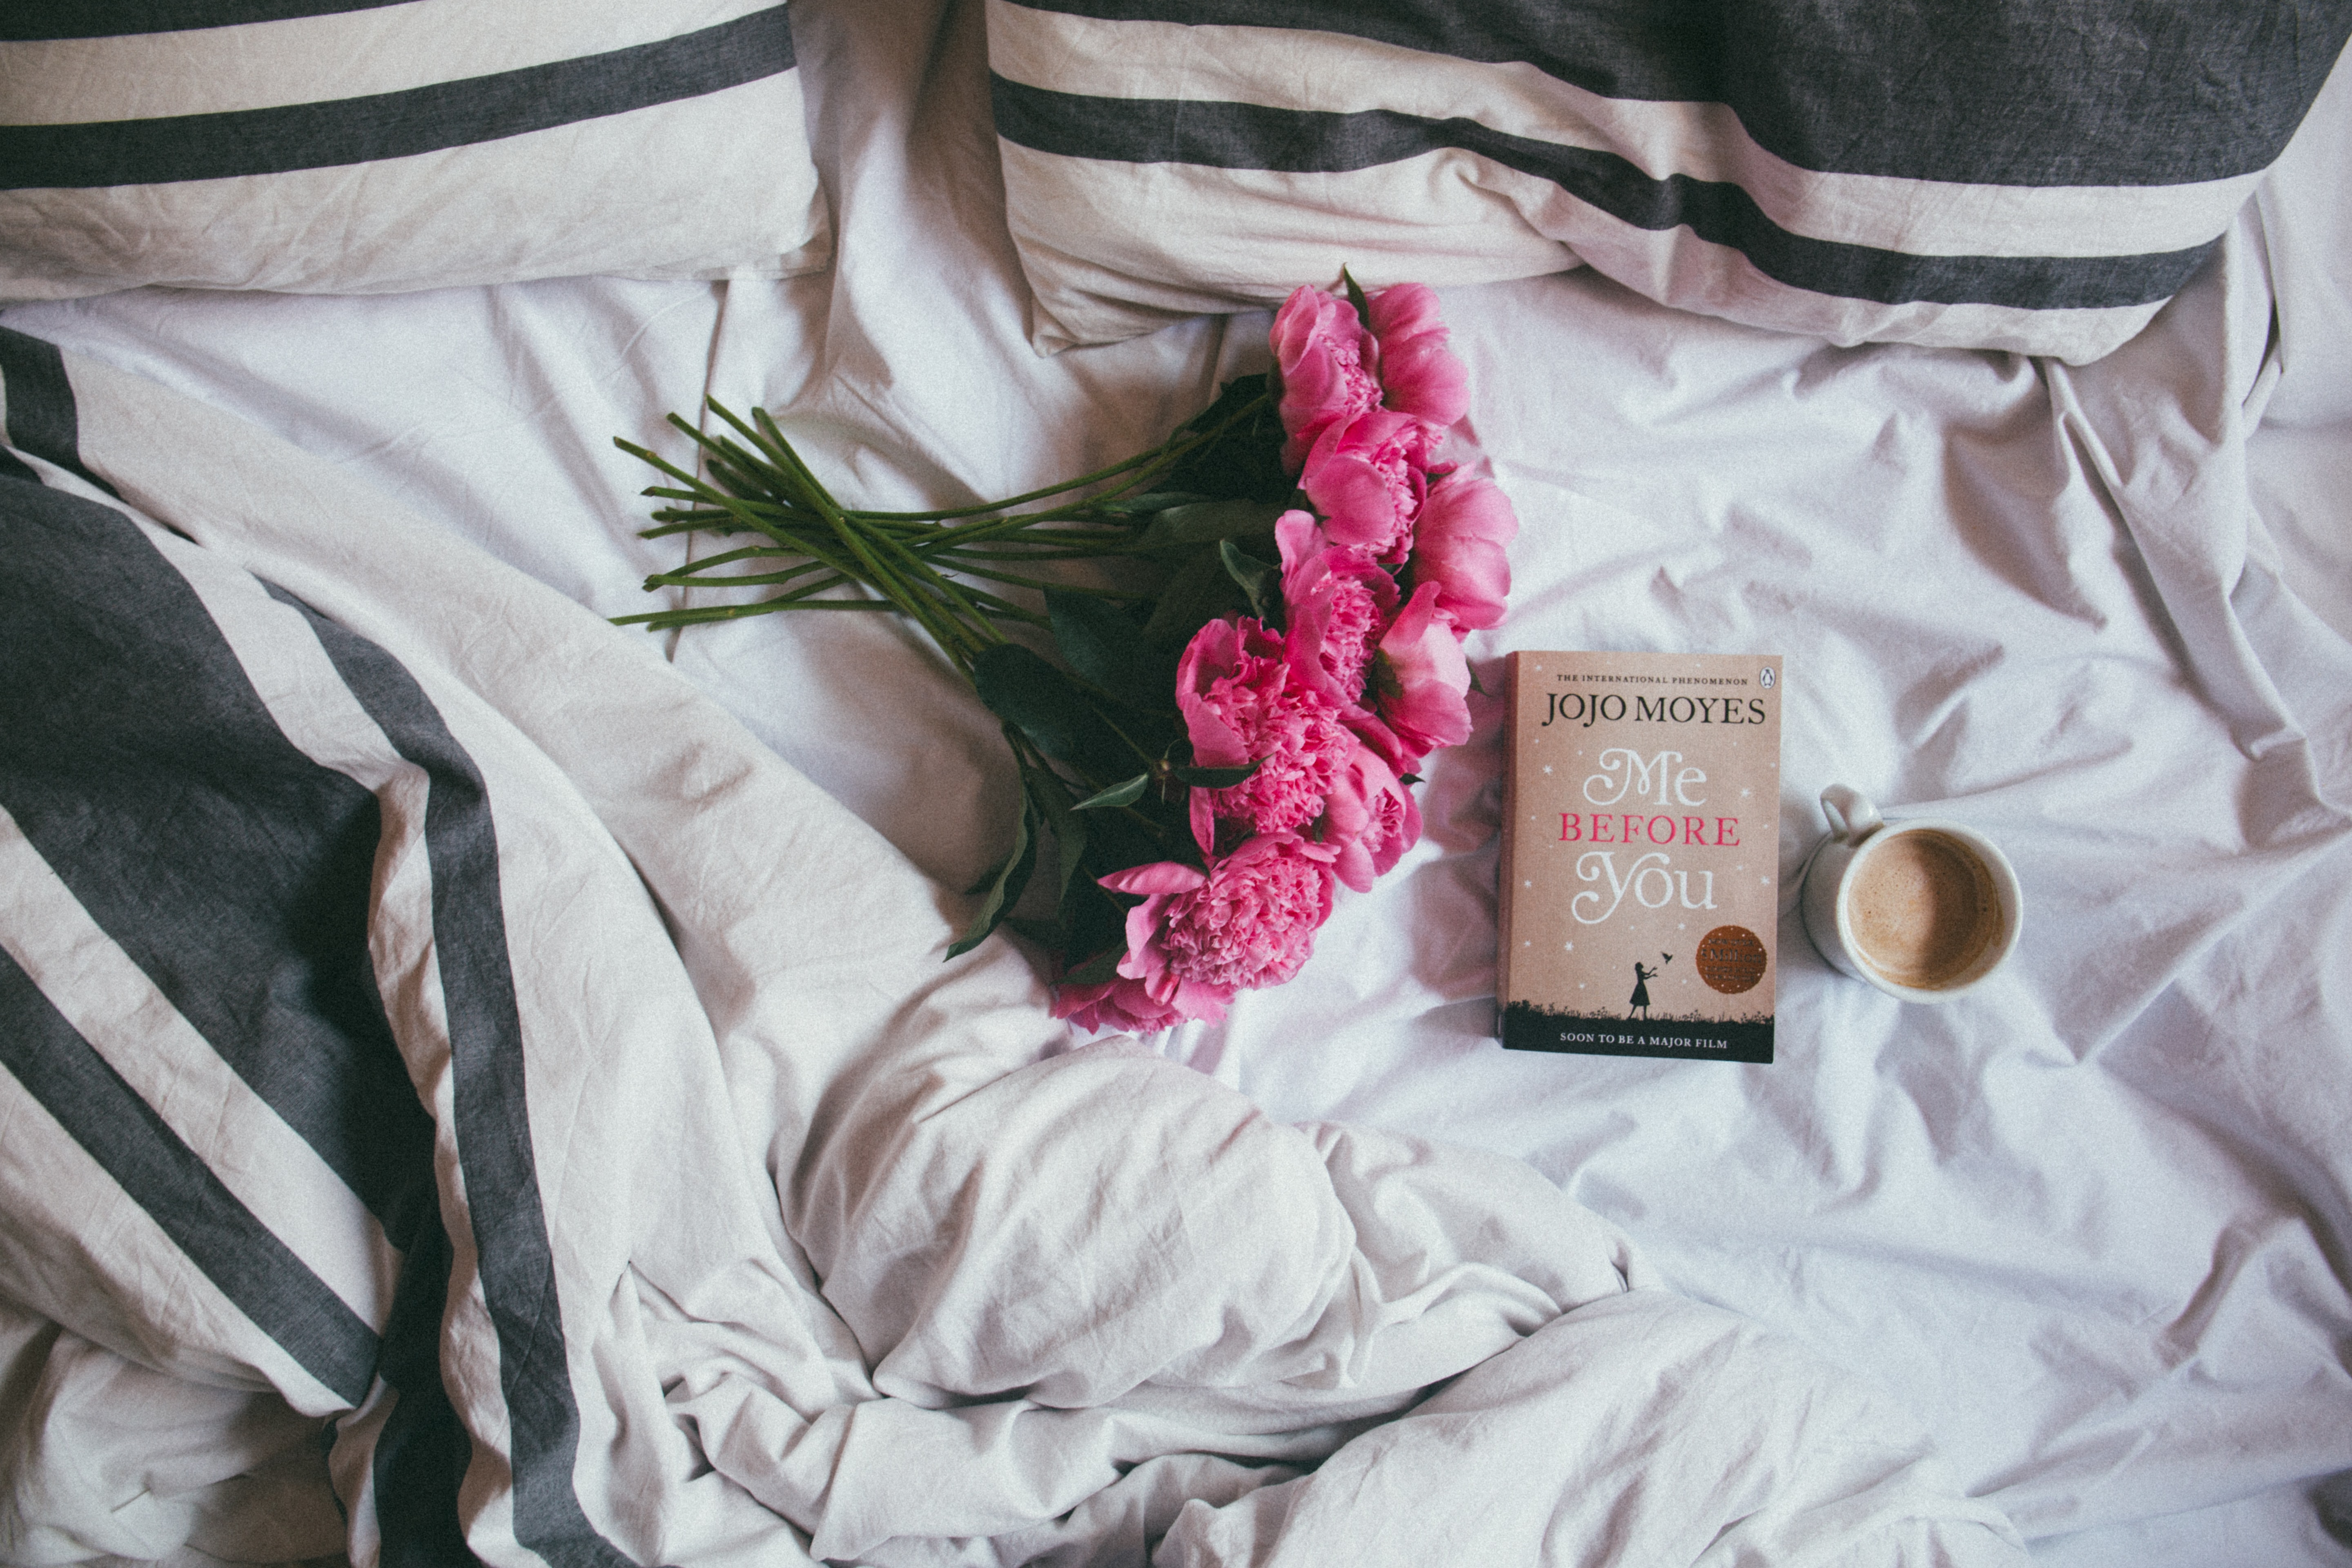 bouquet of pink flowers on top of bed